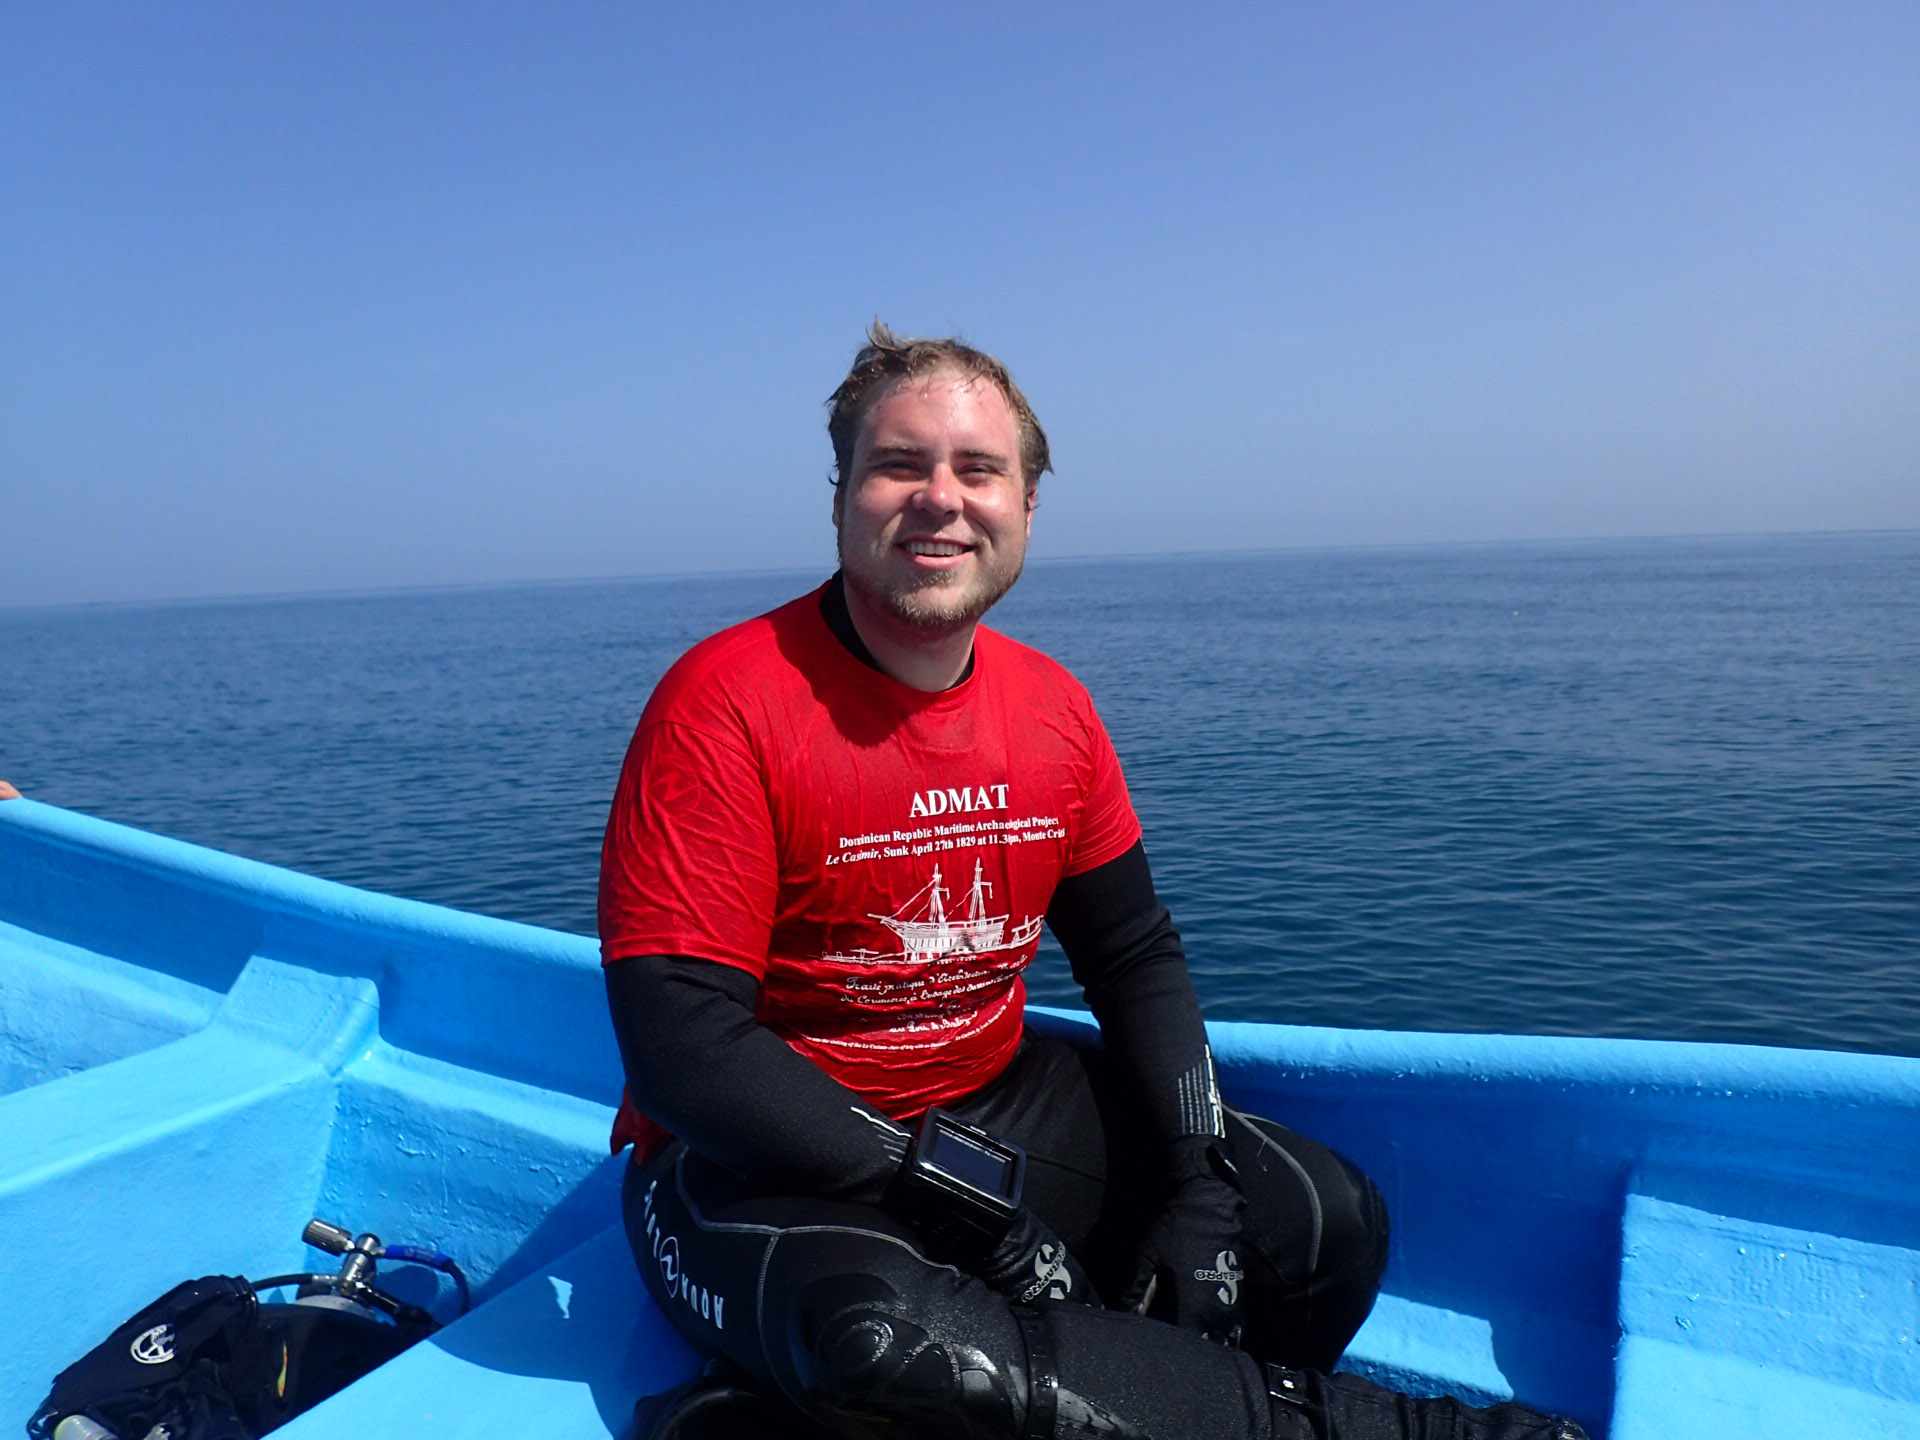 Happy Stephen after a great dive